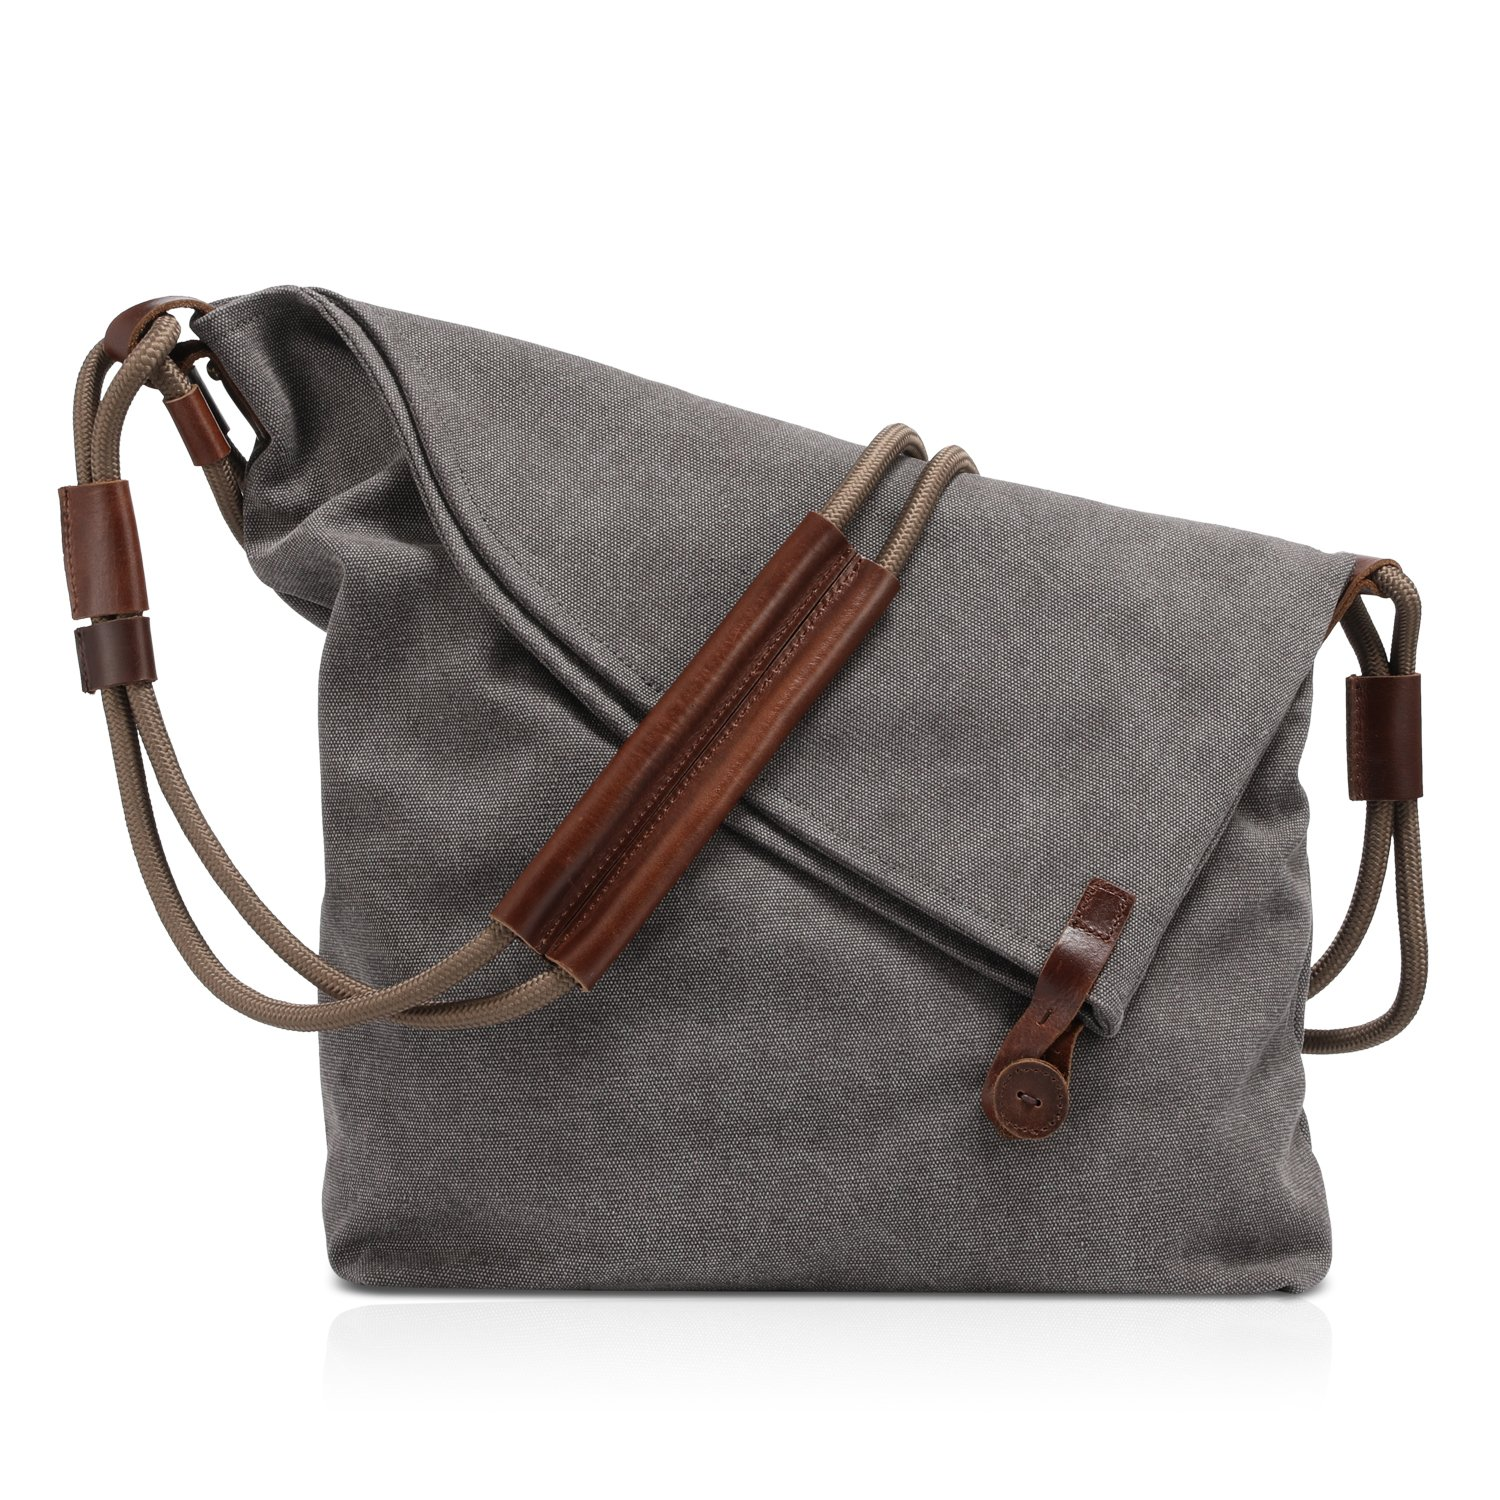 Plambag Canvas Crossbody Shoulder Bag Leather Trim Hobo Purse Messenger Bag Grey PB115GY-US